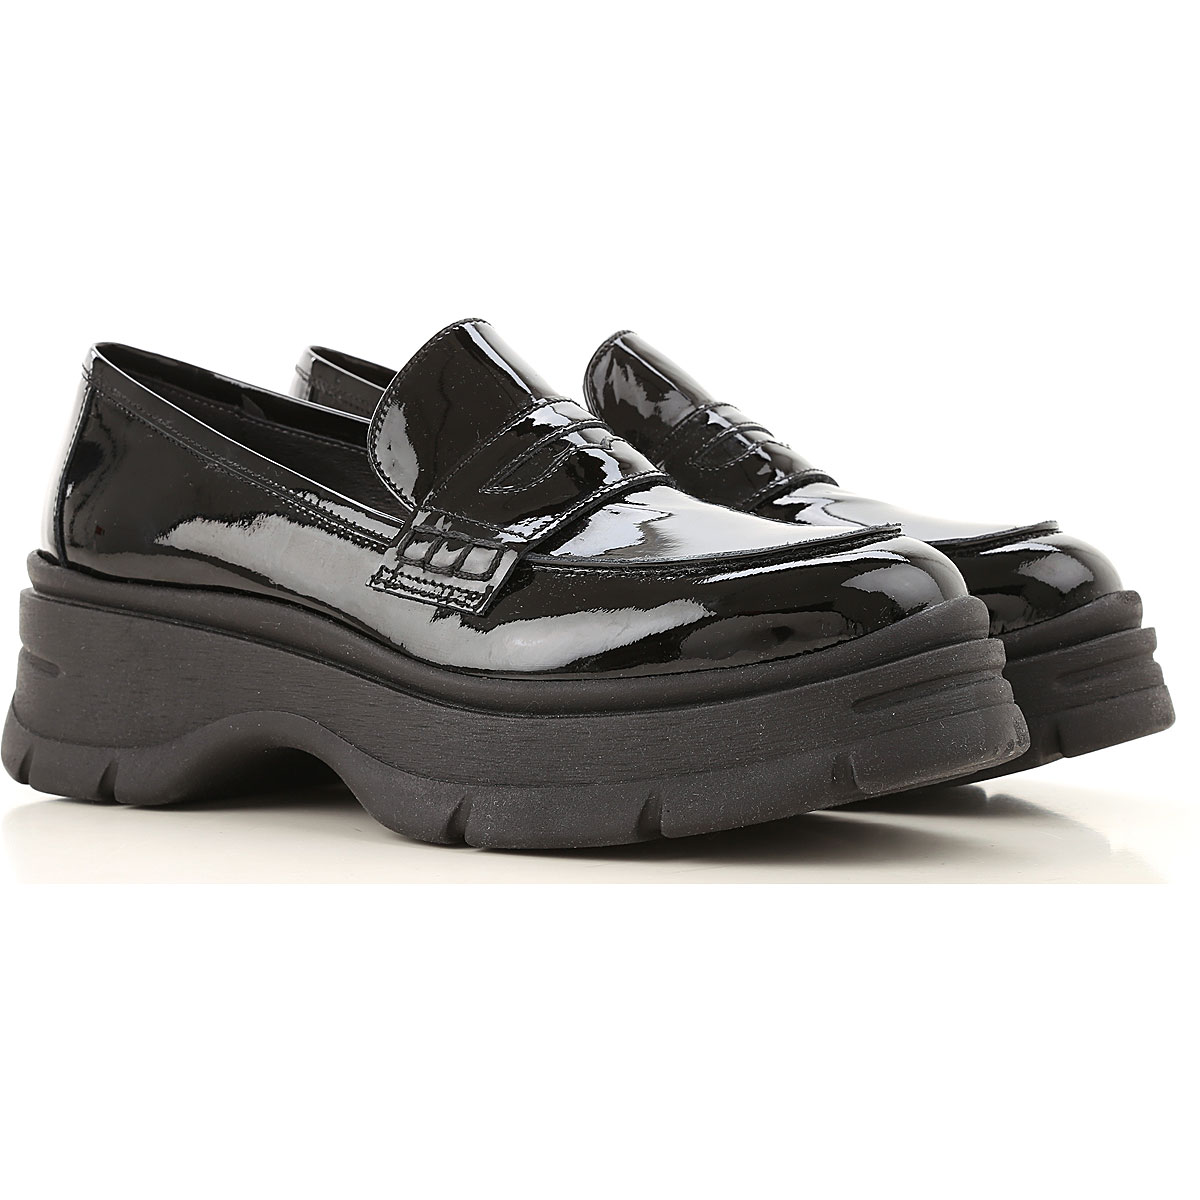 Janet & Janet Loafers for Women Black SE - GOOFASH